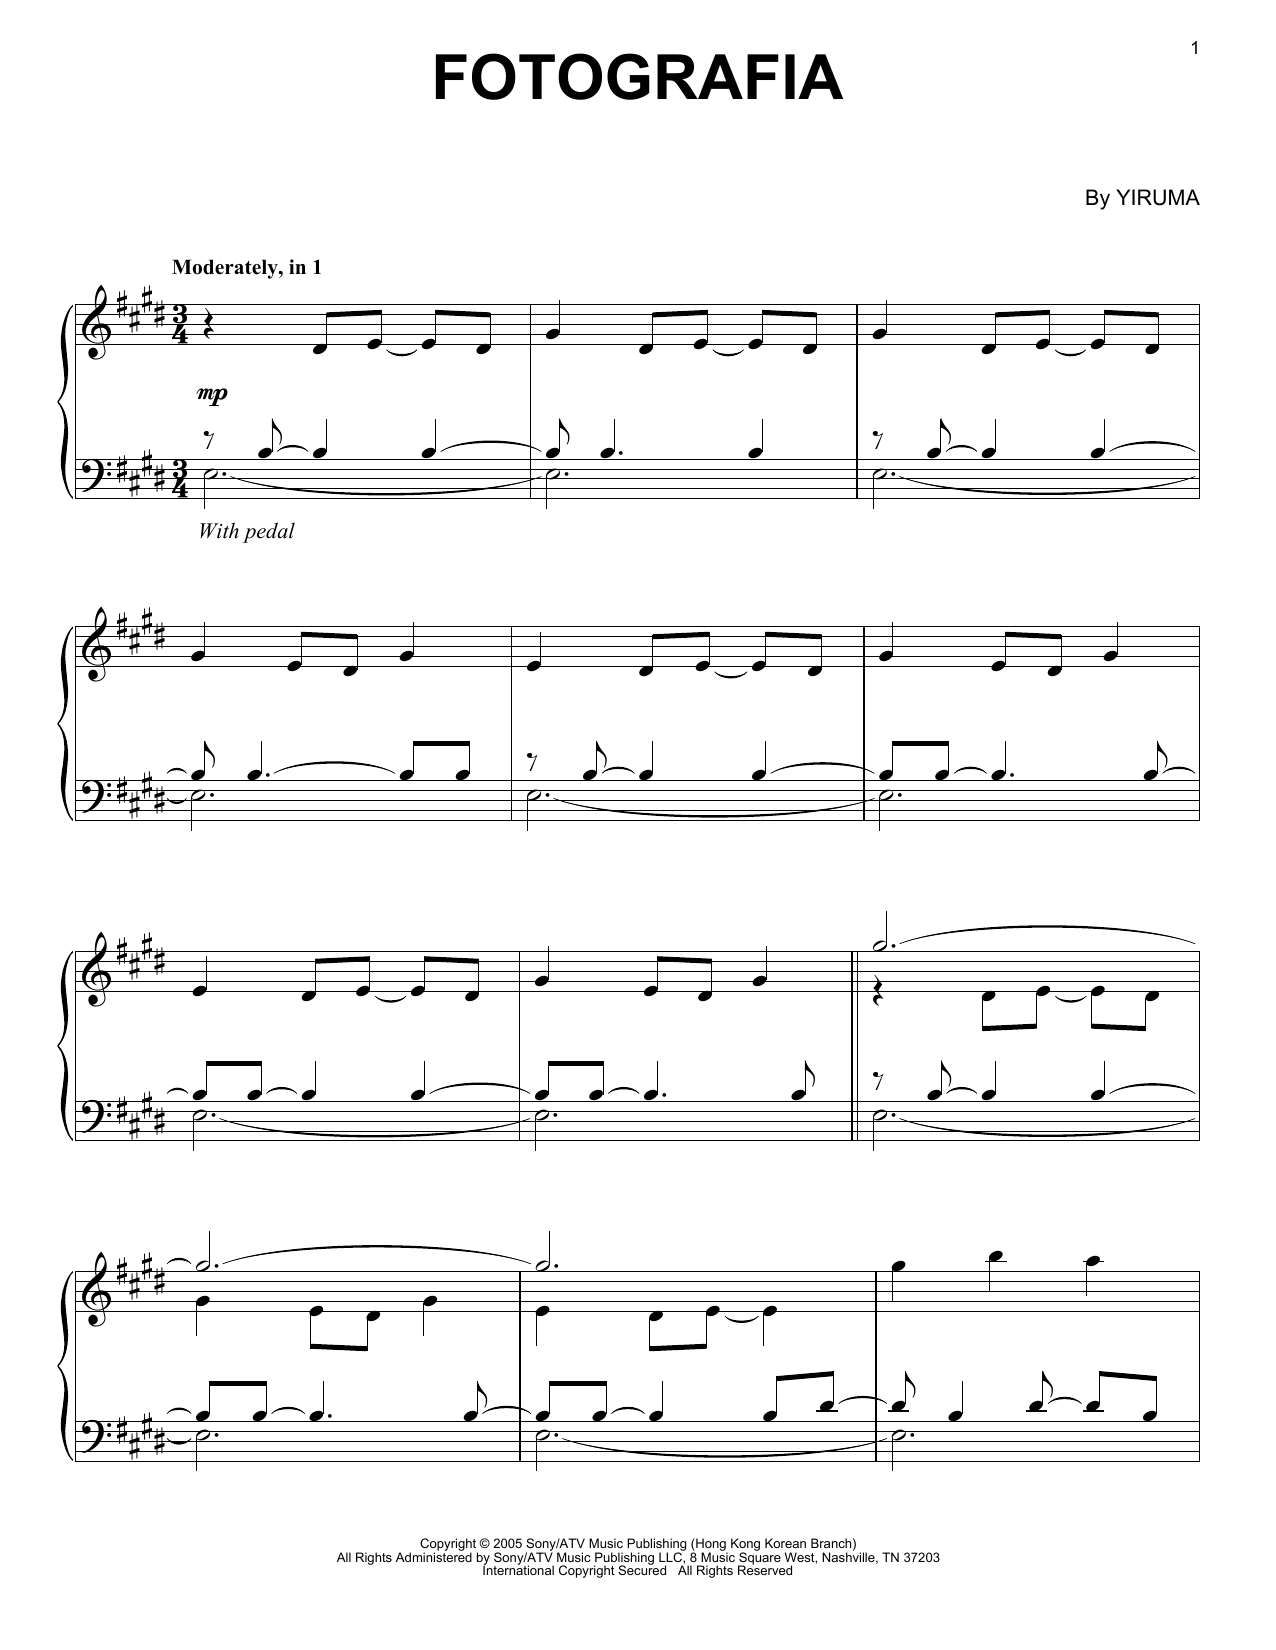 Yiruma Fotografia sheet music notes and chords